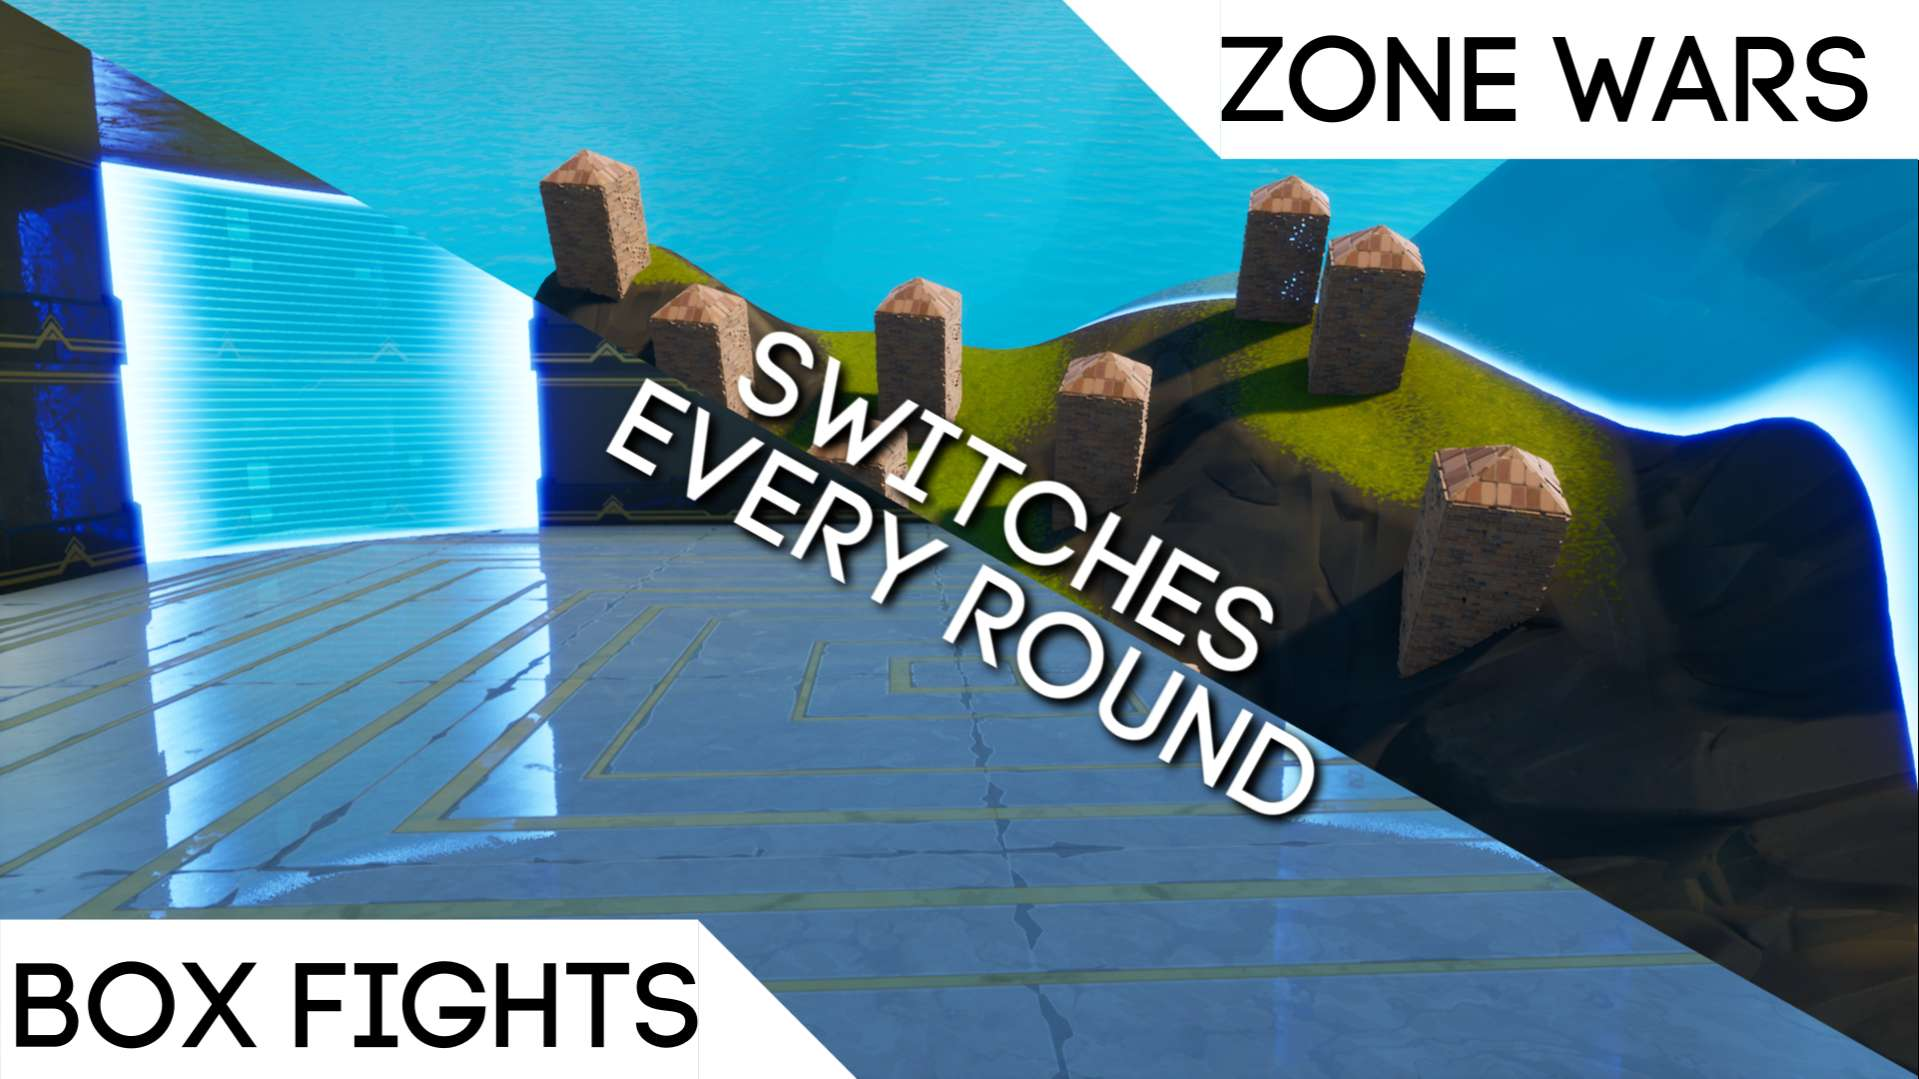 Box Fights & Zone Wars FFA